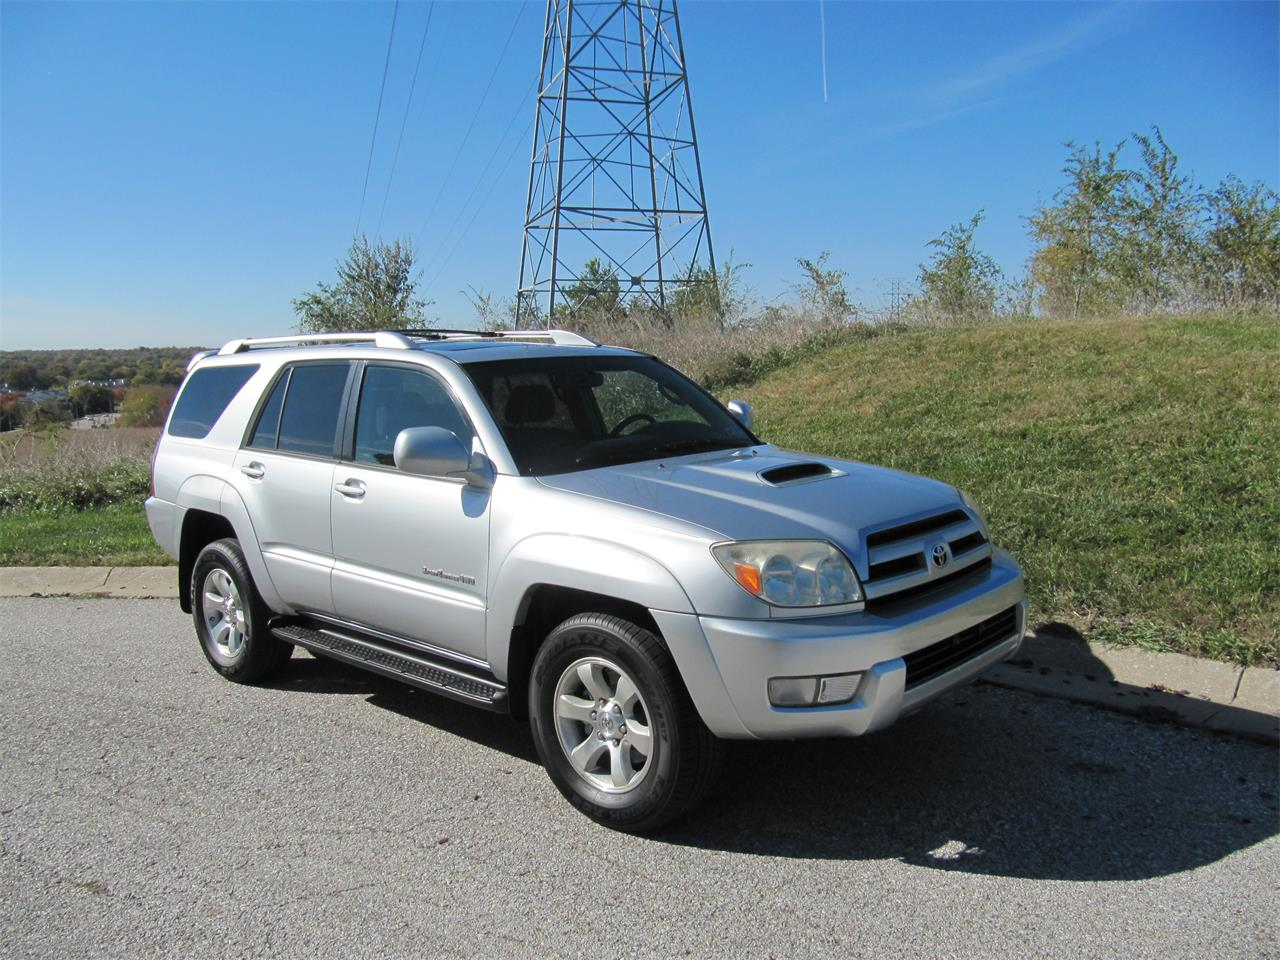 2004 Toyota 4Runner for sale in Omaha, NE – photo 9